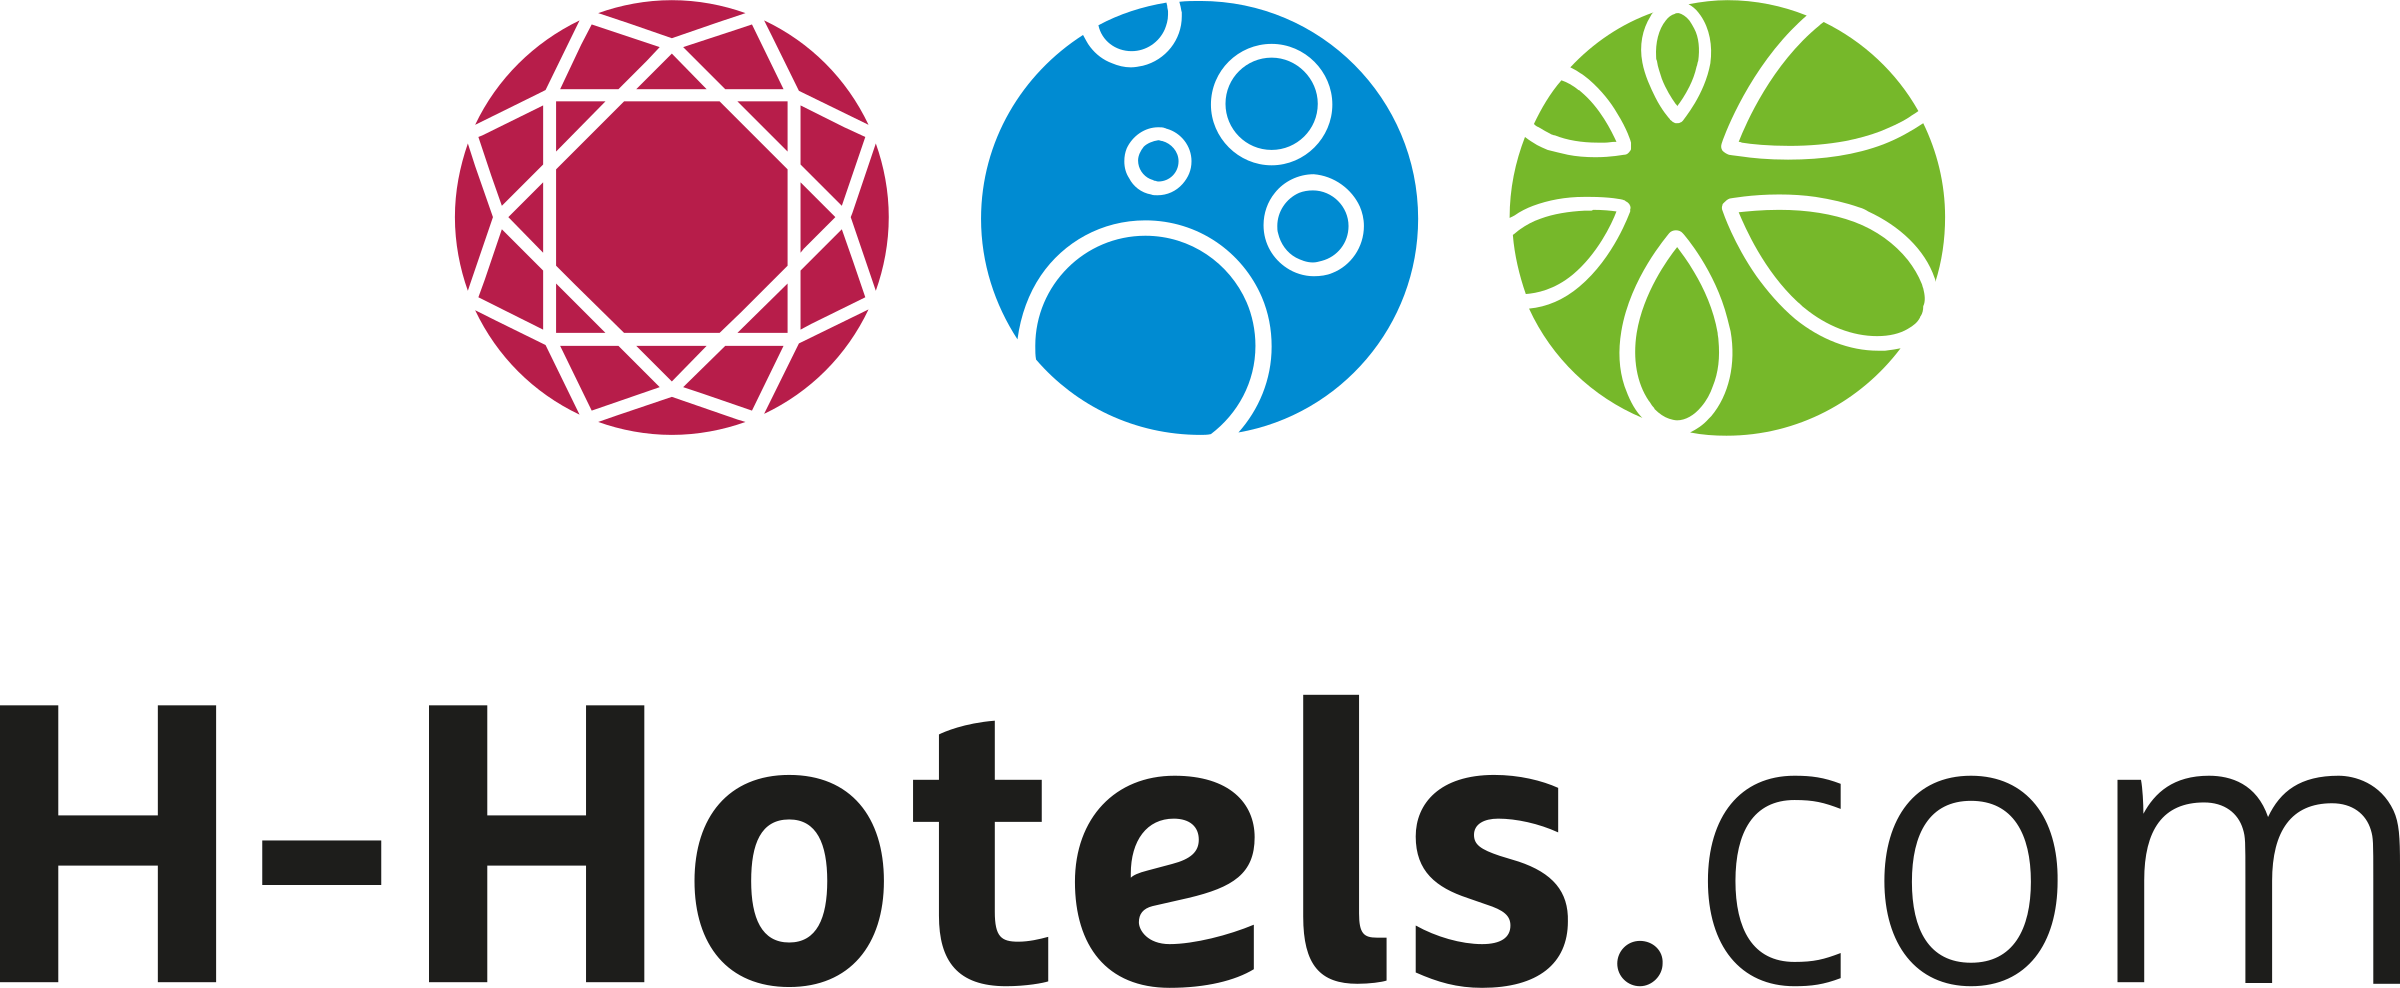 Hotels com logo png. Transparent h logos png black and white library